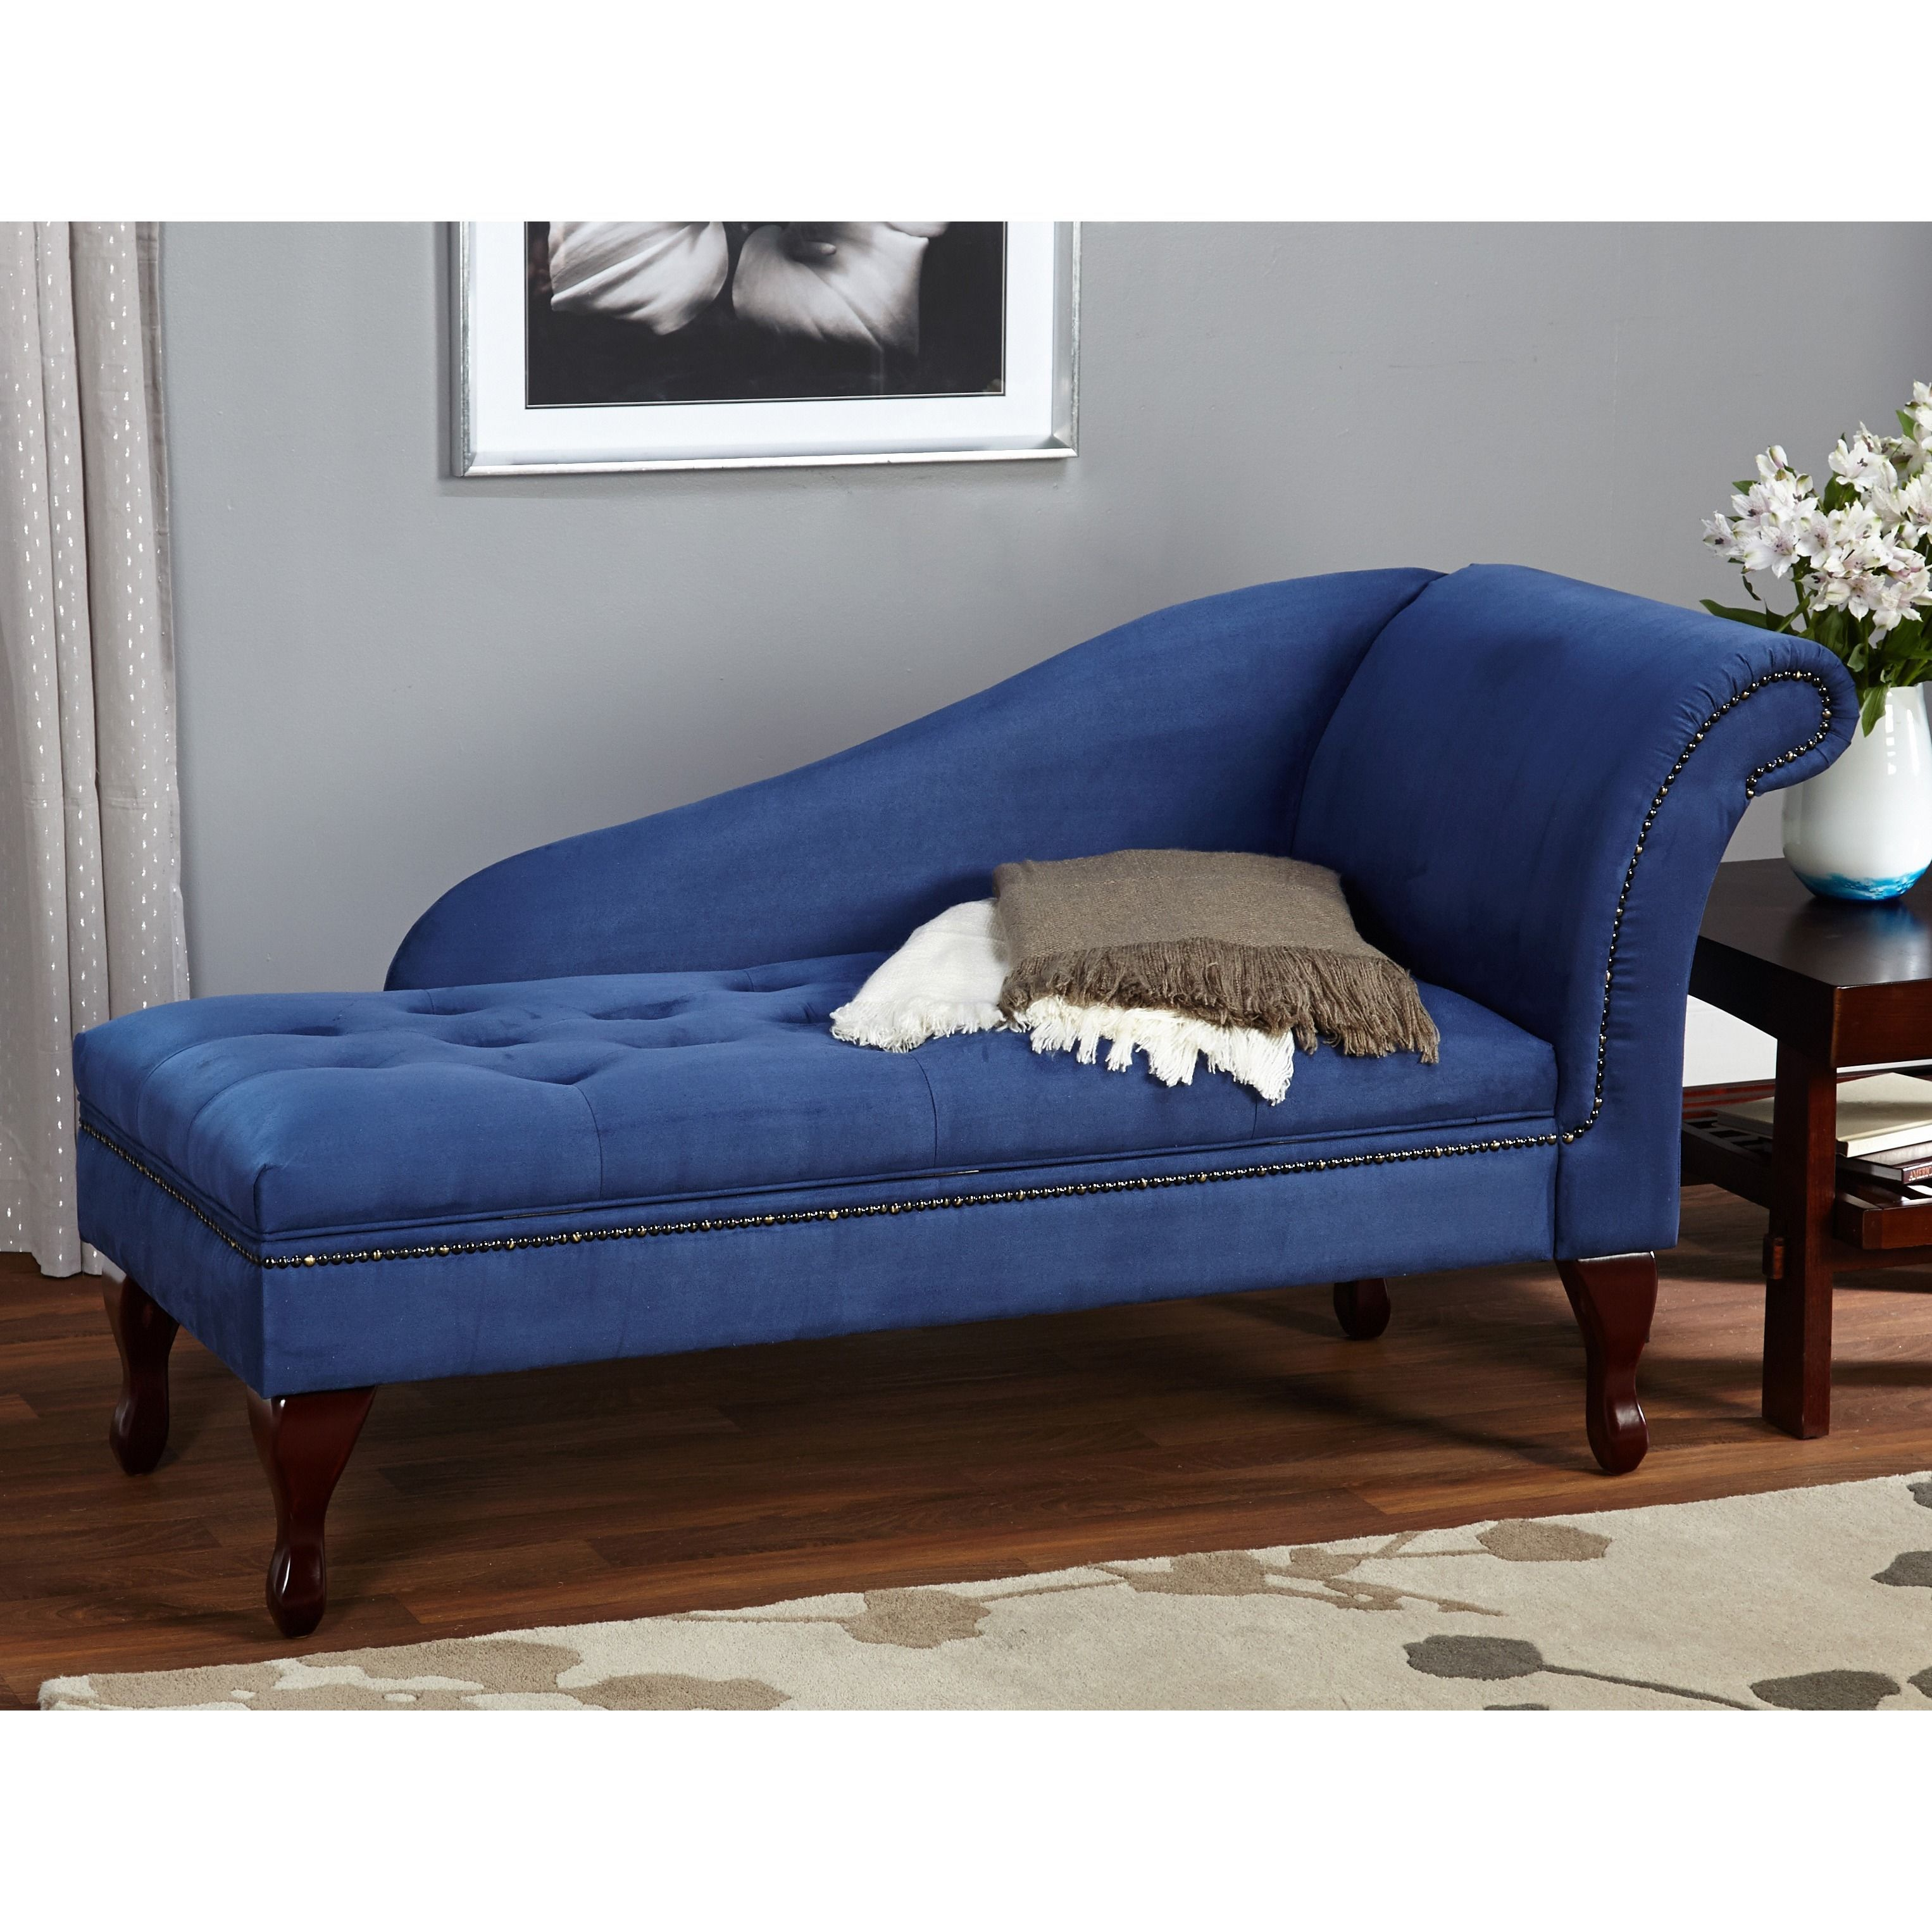 Explore Blue Living Rooms Living Room Chairs and more! Simple Living Blue Storage Chaise ...  sc 1 st  Pinterest : storage chaise lounge furniture - Sectionals, Sofas & Couches